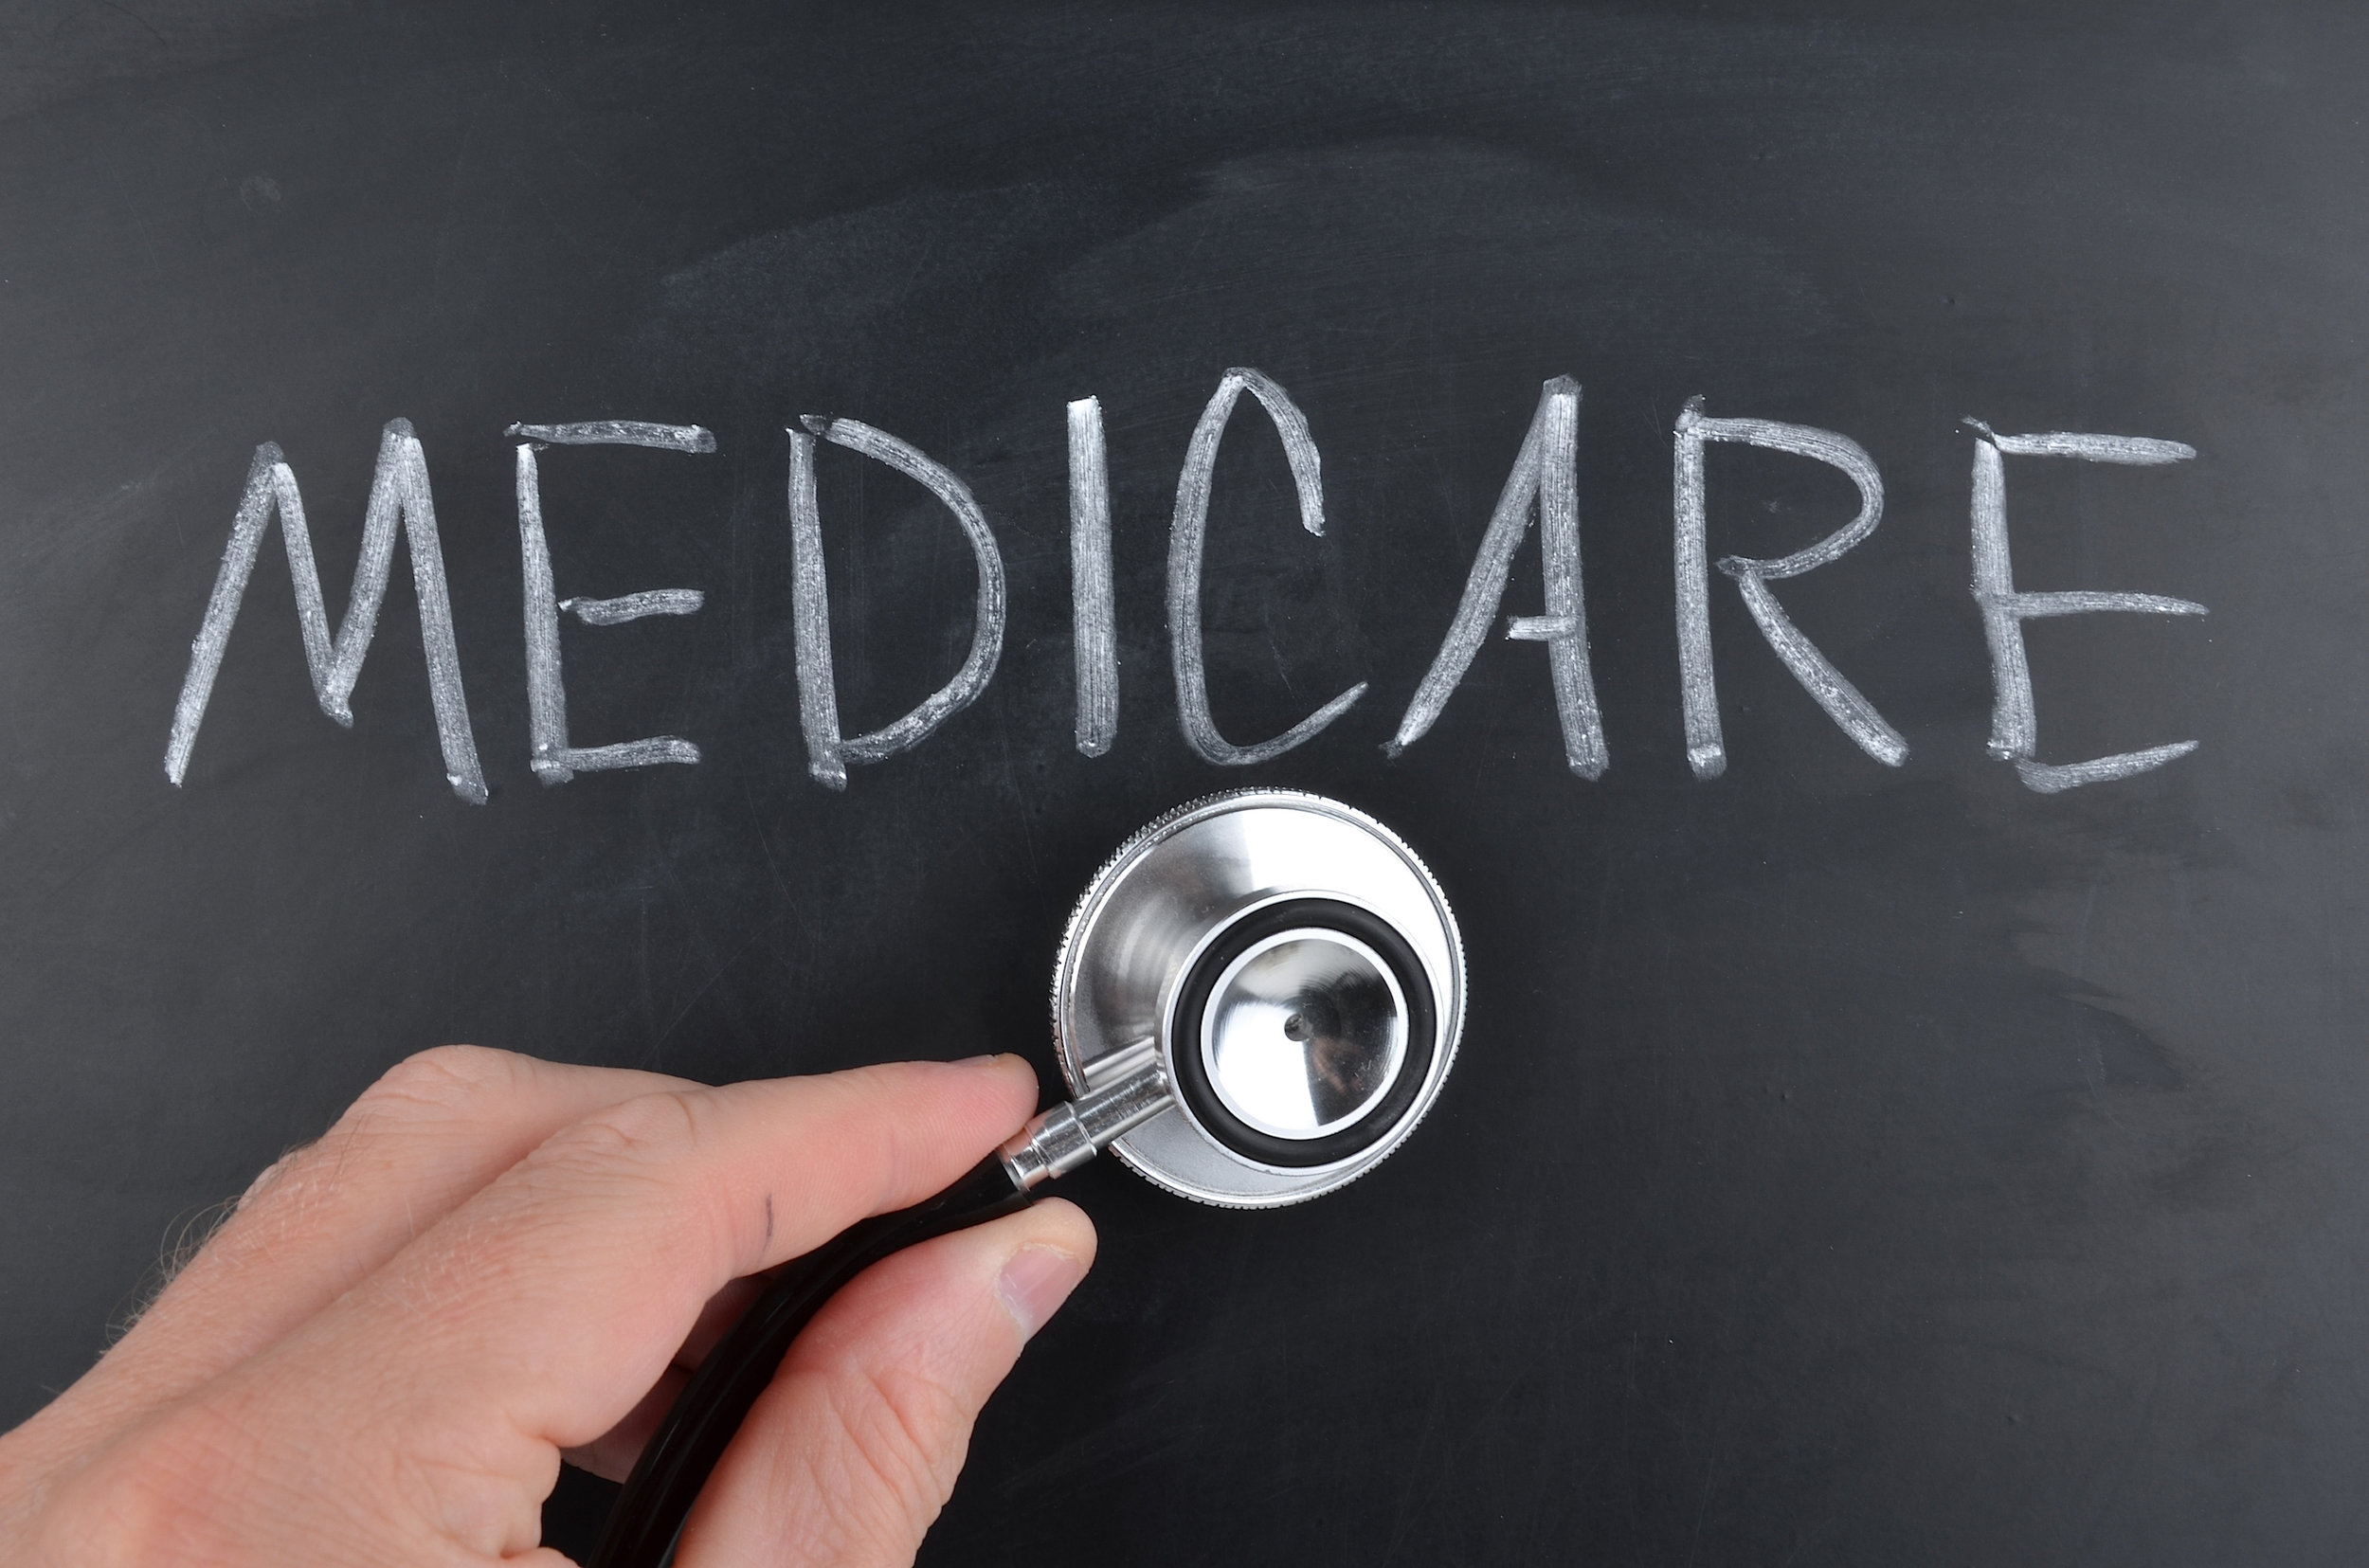 For more information on Medicare Advantage and how they compare to Medicare supplements please contact us today for a free consultation.